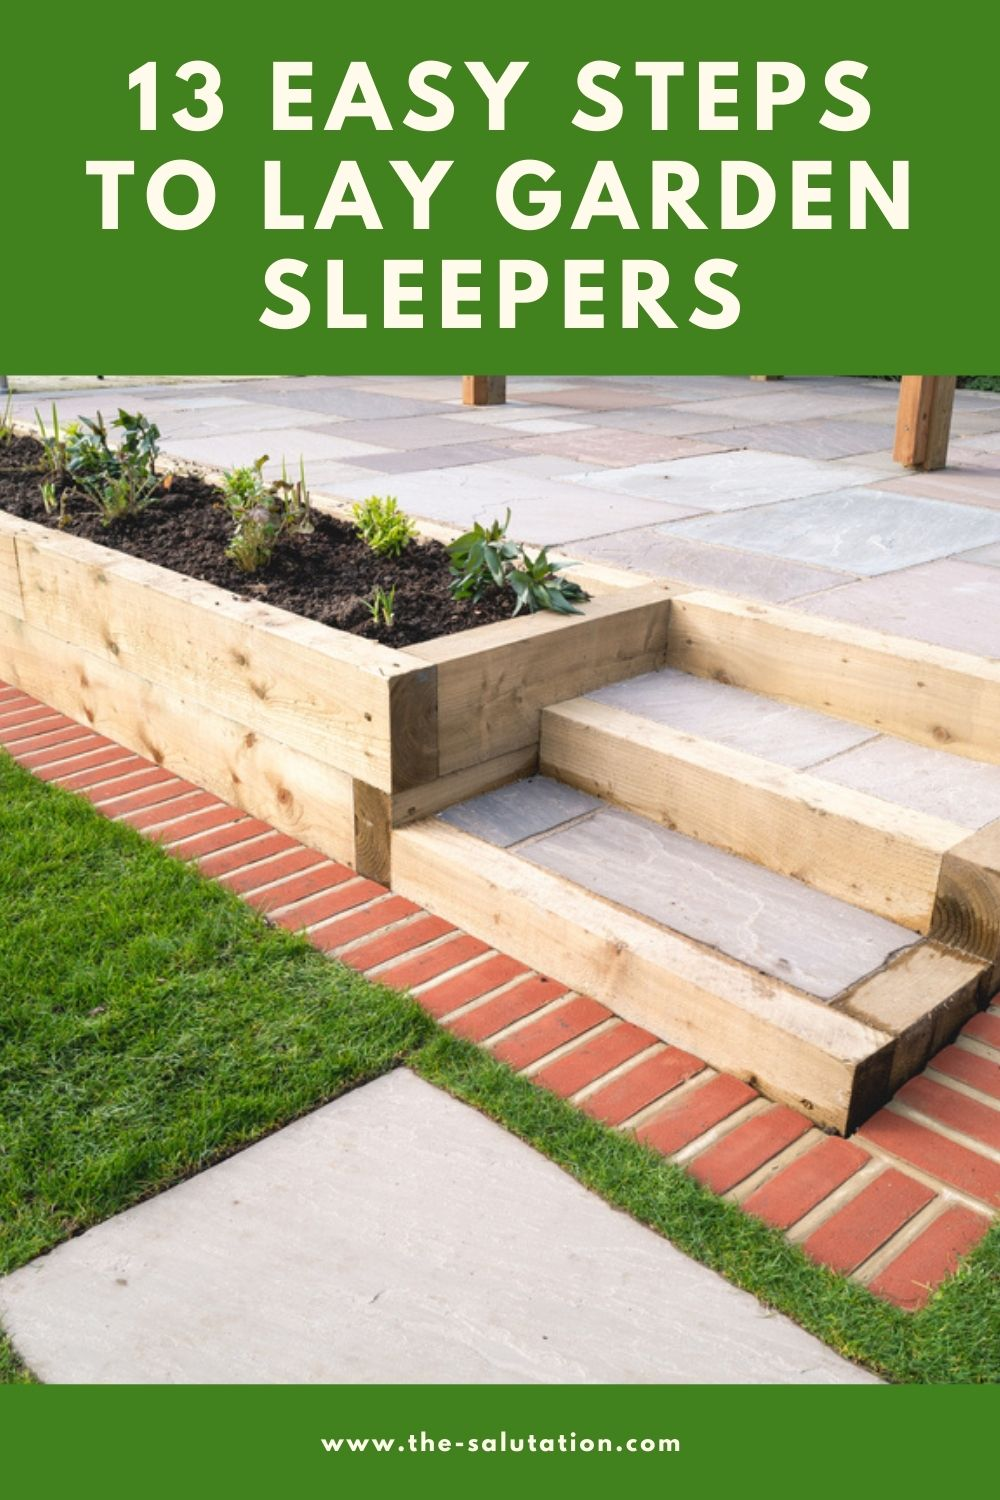 13 Easy Steps to Lay Garden Sleepers 2